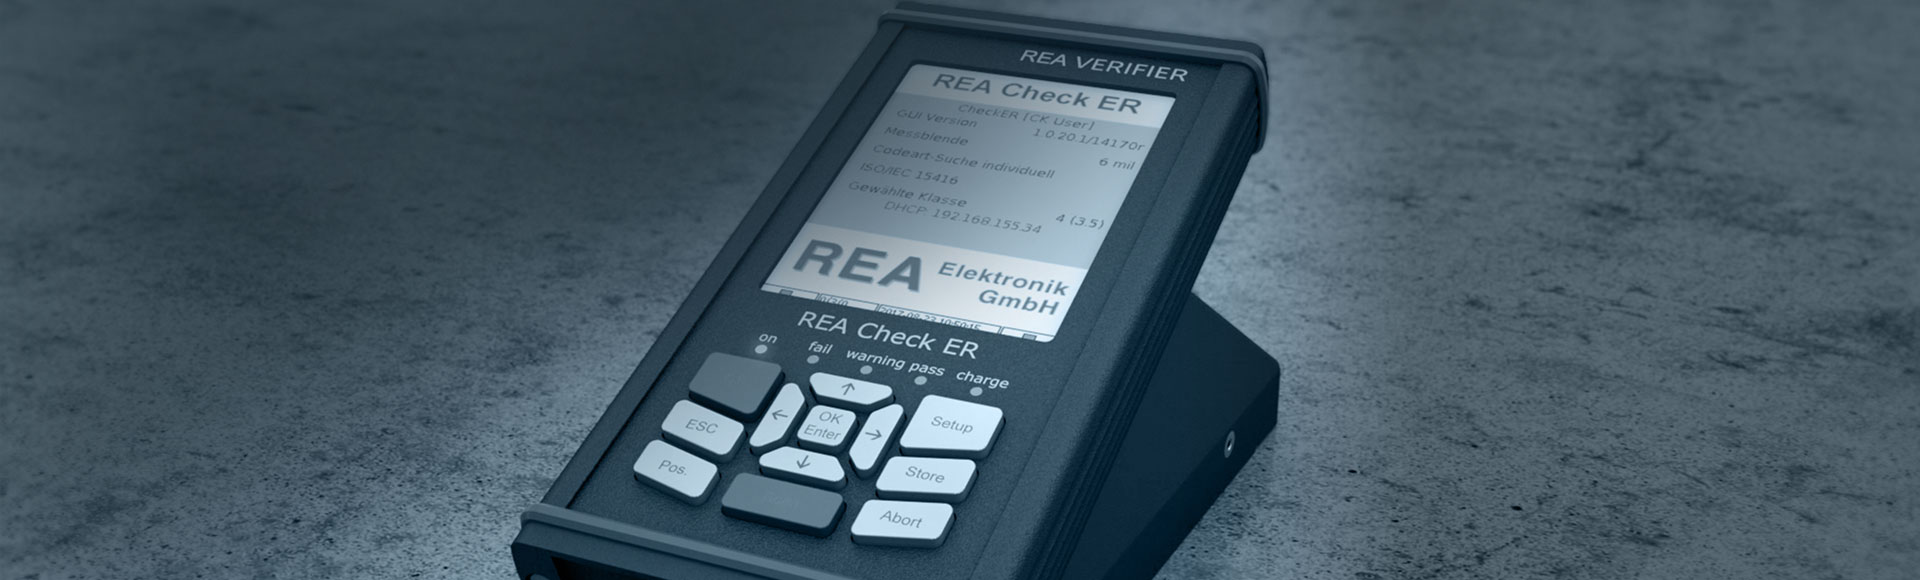 Code Verification Systems For 1d And 2d Codes Rea Verifier Laser Marked Bar On Printed Circuit Board Barcode Check Er